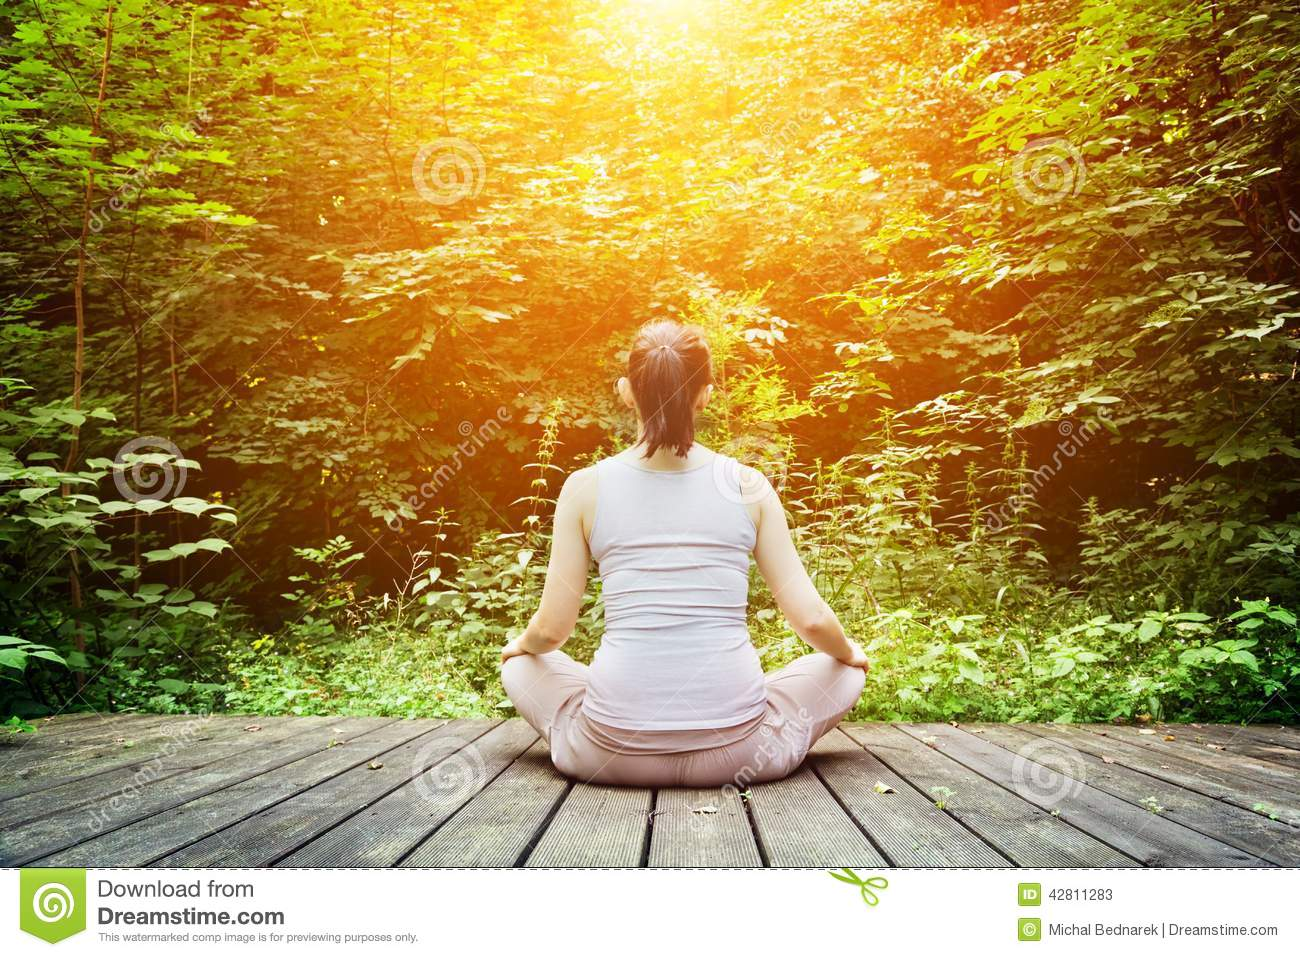 Young woman meditating in a forest. Zen, meditation, healthy breathing